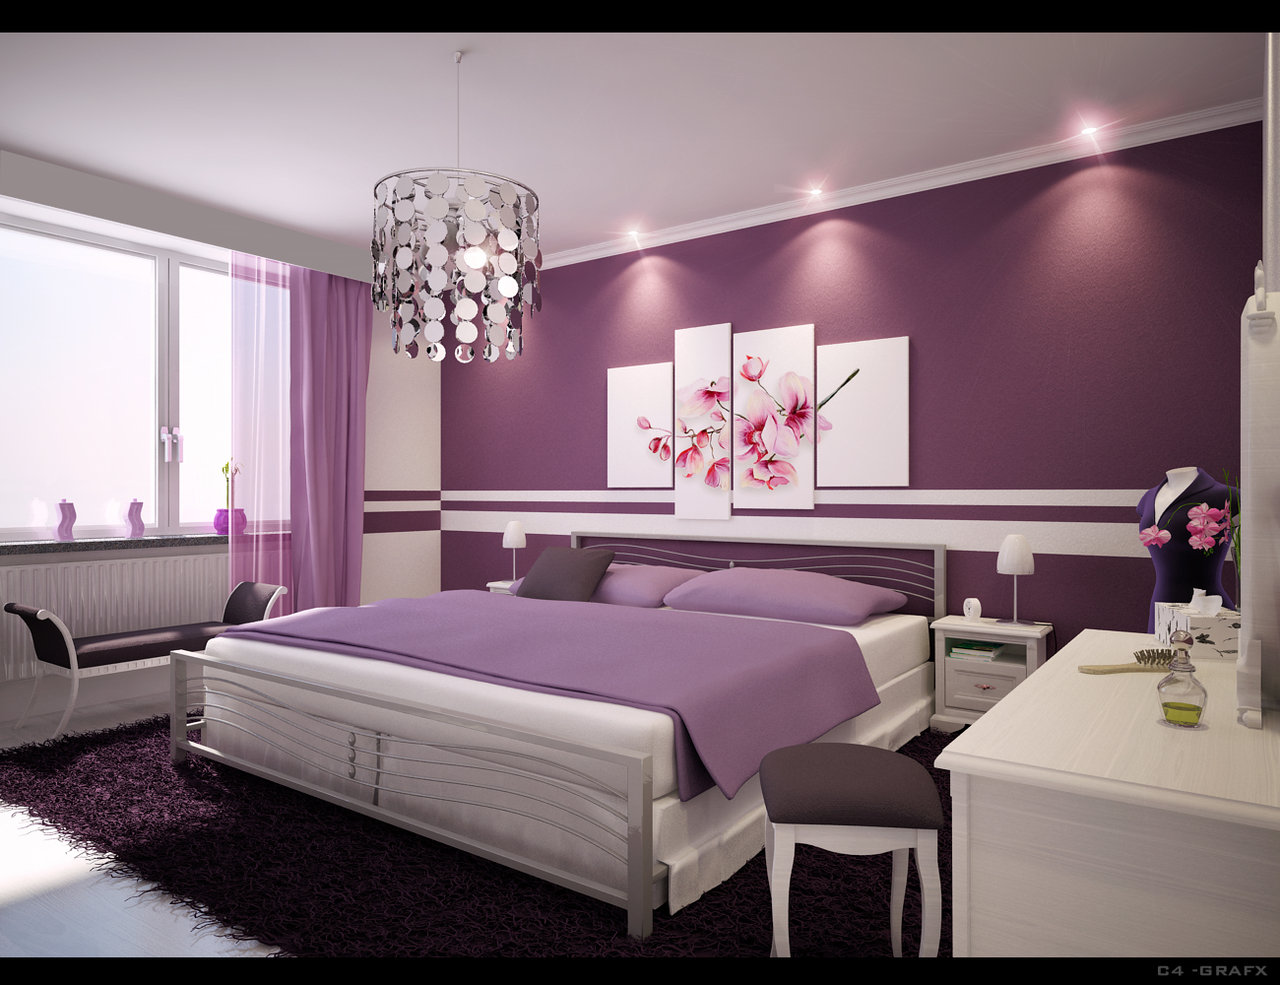 Http Www Home Designing Com 2009 06 Beautiful Bedroom Designs